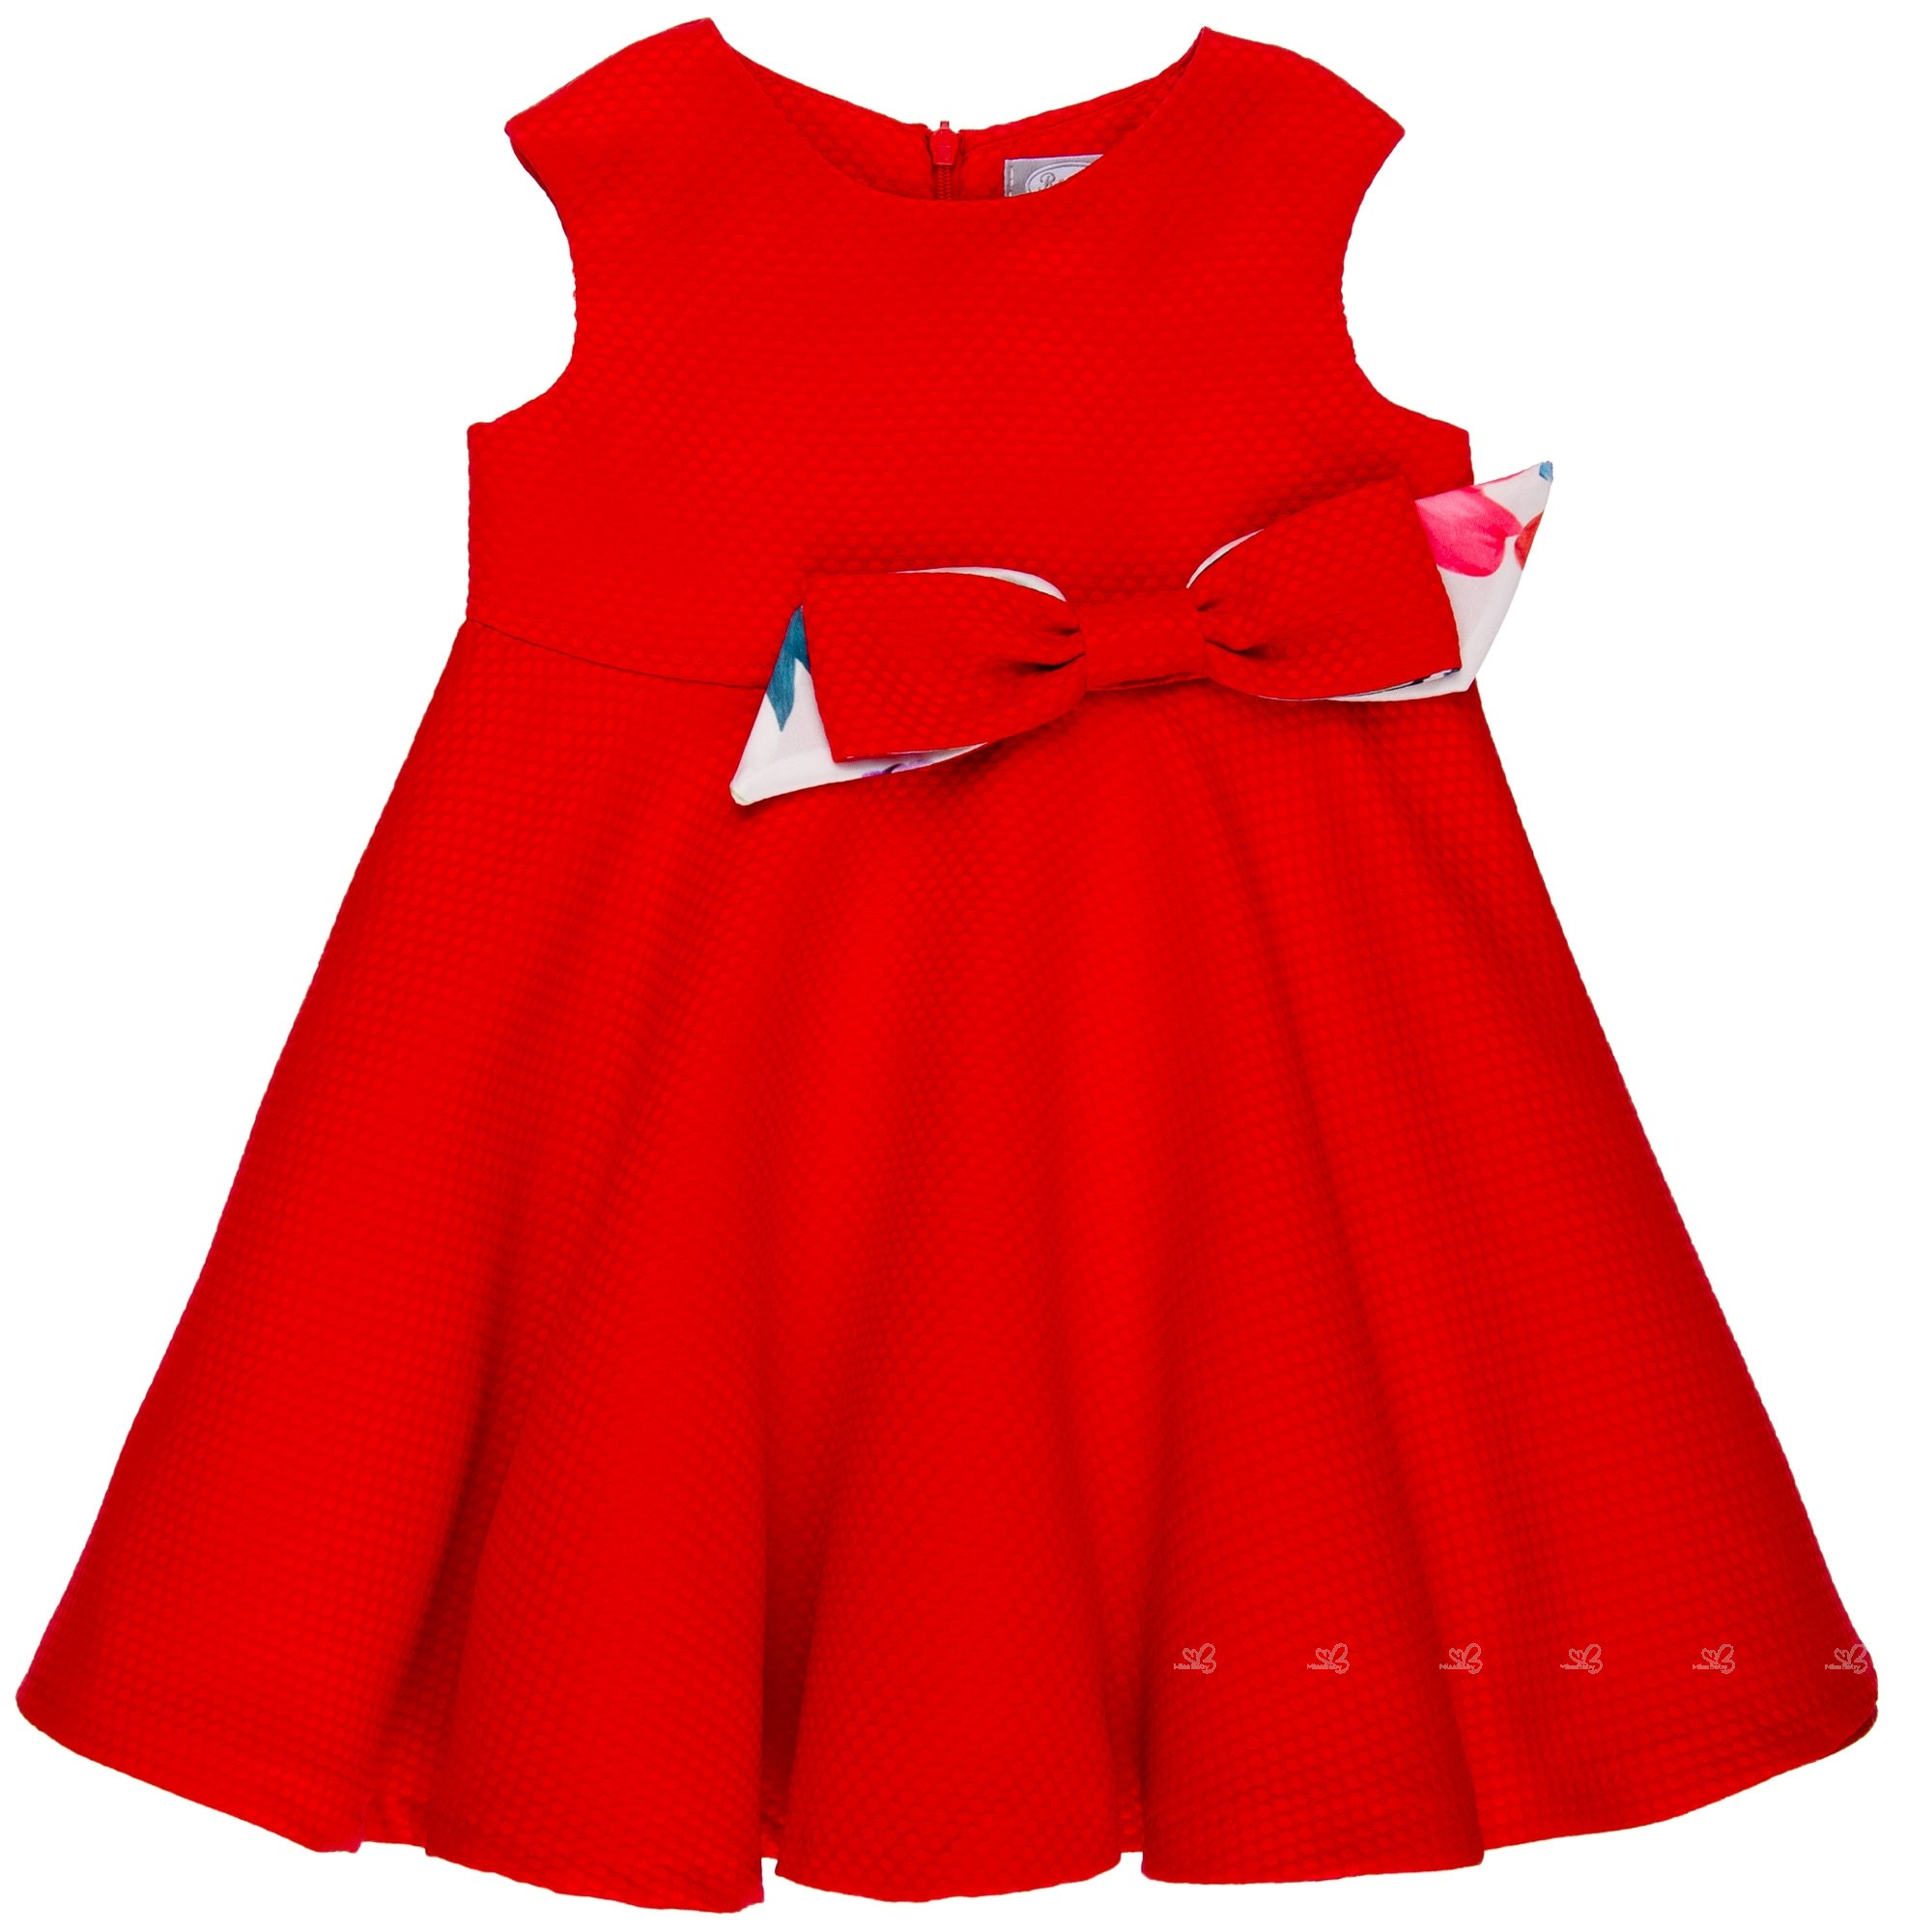 80f4a4f4e530 Rochy Girls Red Dress   Bow